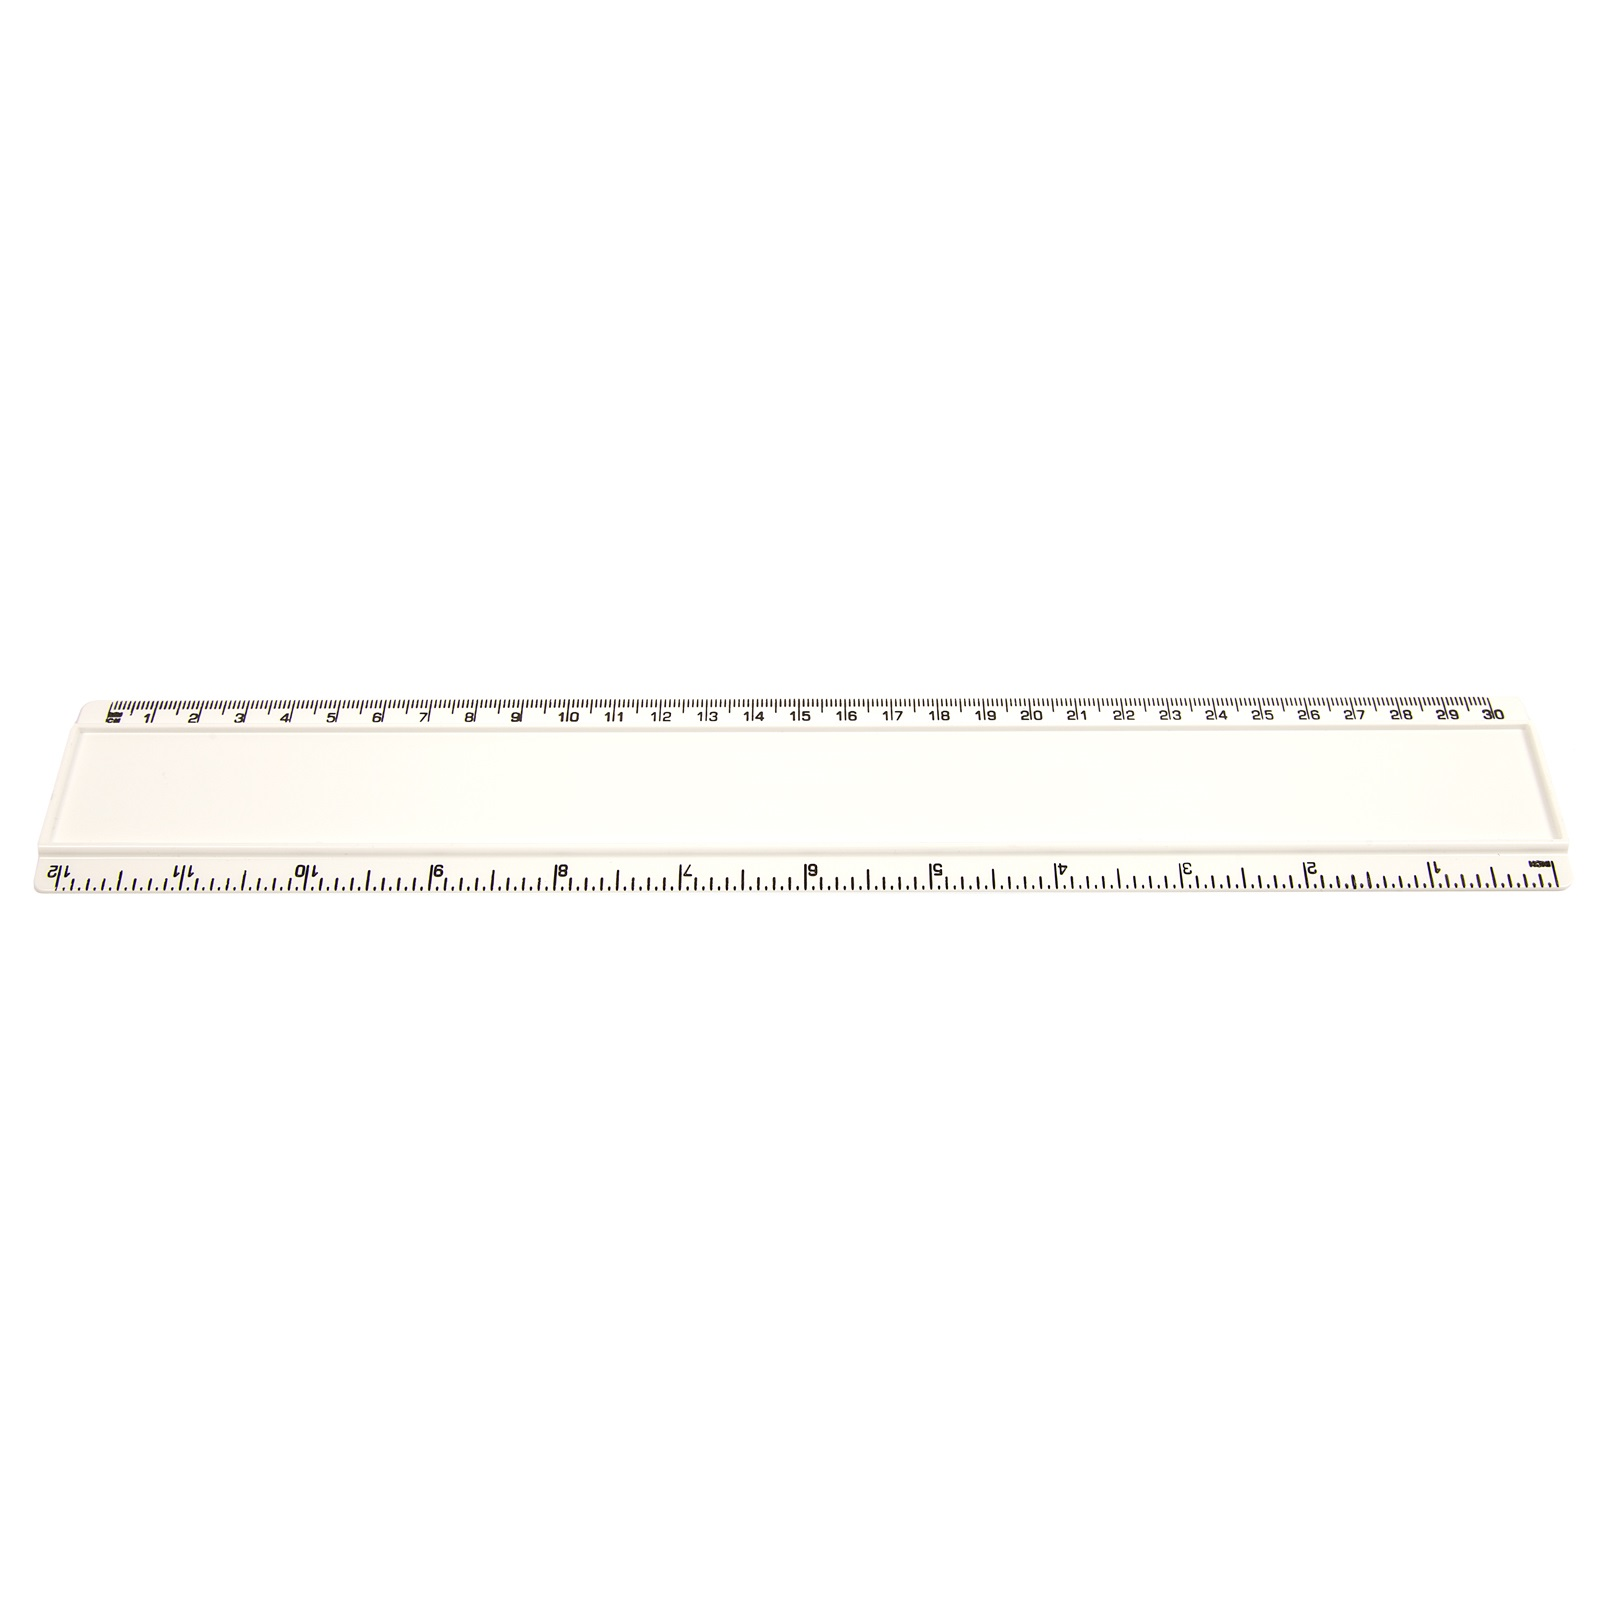 Lined Handwriting Paper Ex le likewise View Ruler likewise Measuring Tape In Centered Letter further  likewise Image Zspqlt. on blank ruler template